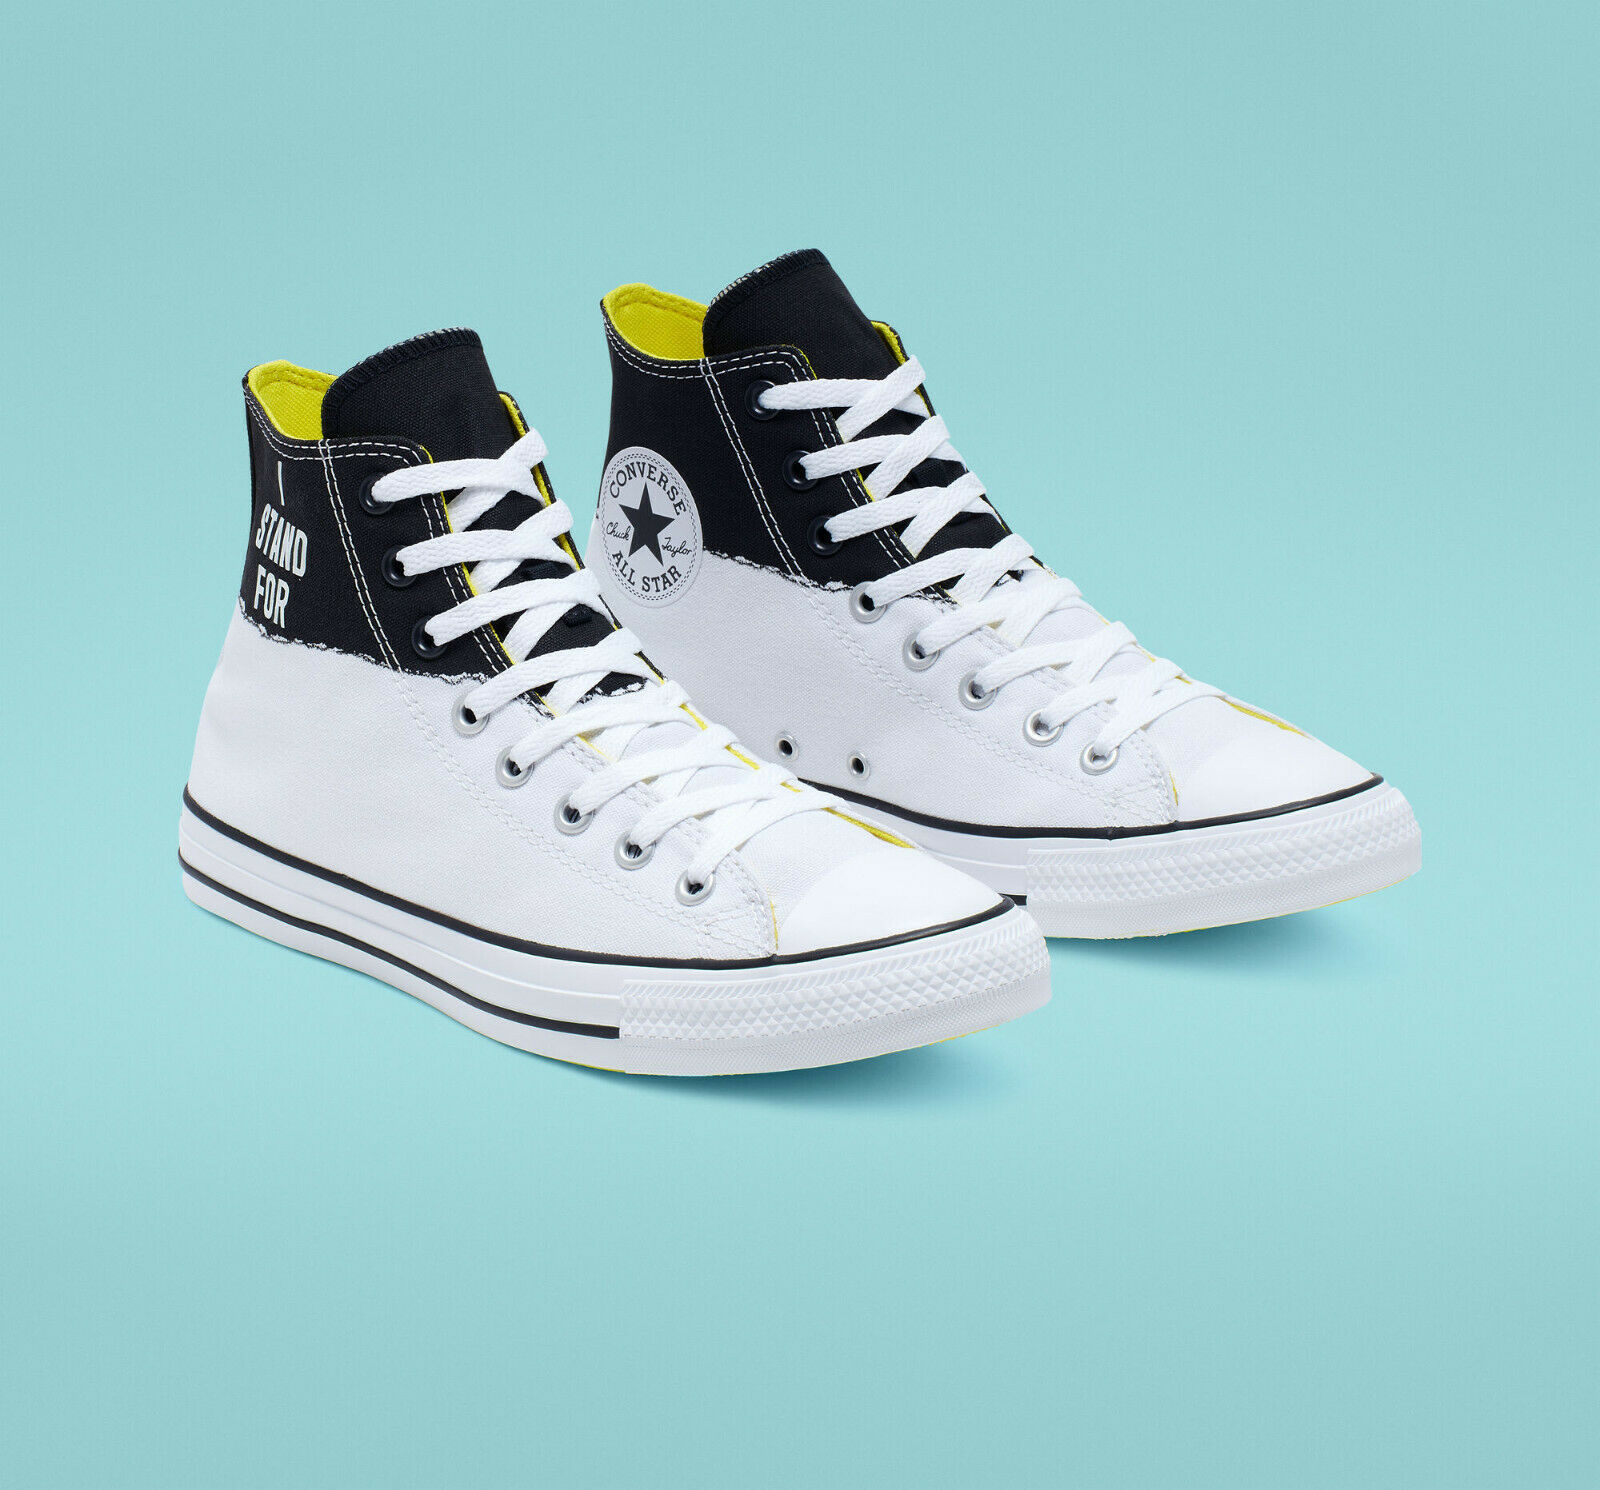 Converse Mens CTAS Hi I Stand For Canvas 165709C White/Black/Fresh Yellow Sz 10